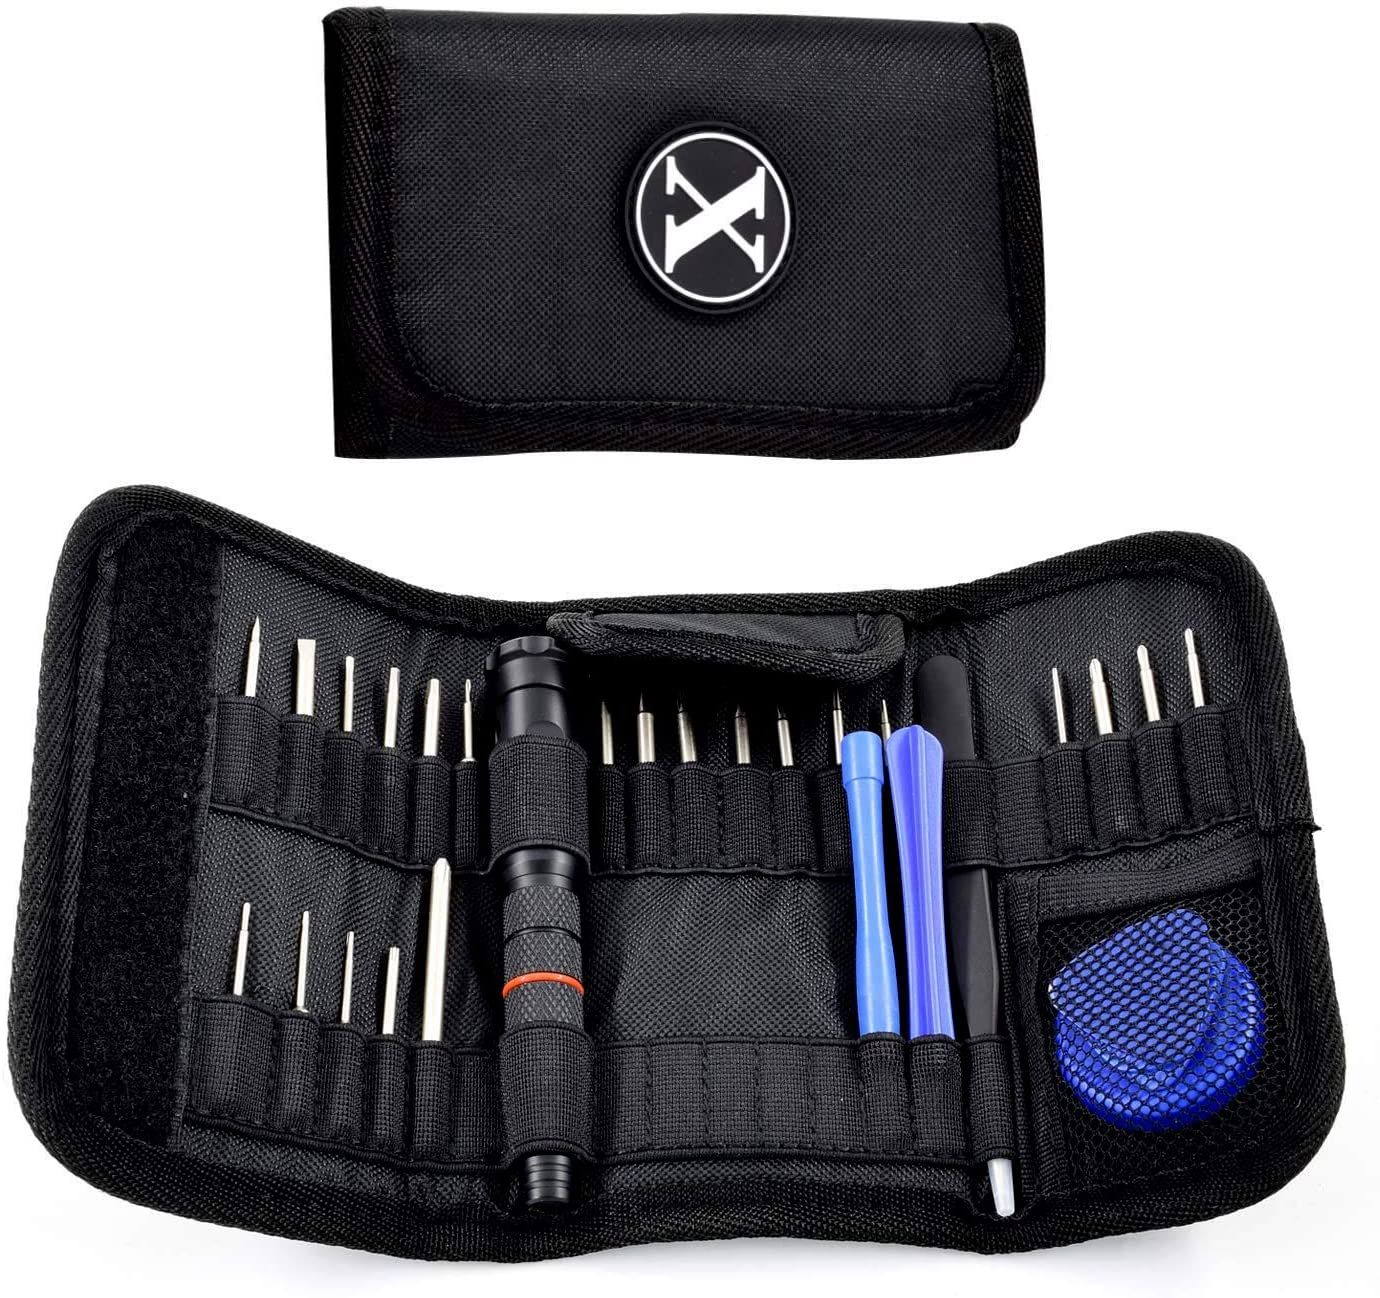 Precision Screwdriver Set with a Magnetizer, GOTO 29 in 1 Magnetic Screwdriver Set in Rugged Canvas Pouch, S2 Alloy Screwdriver Bits for Electronics, Glasses, Watch, Jewelry